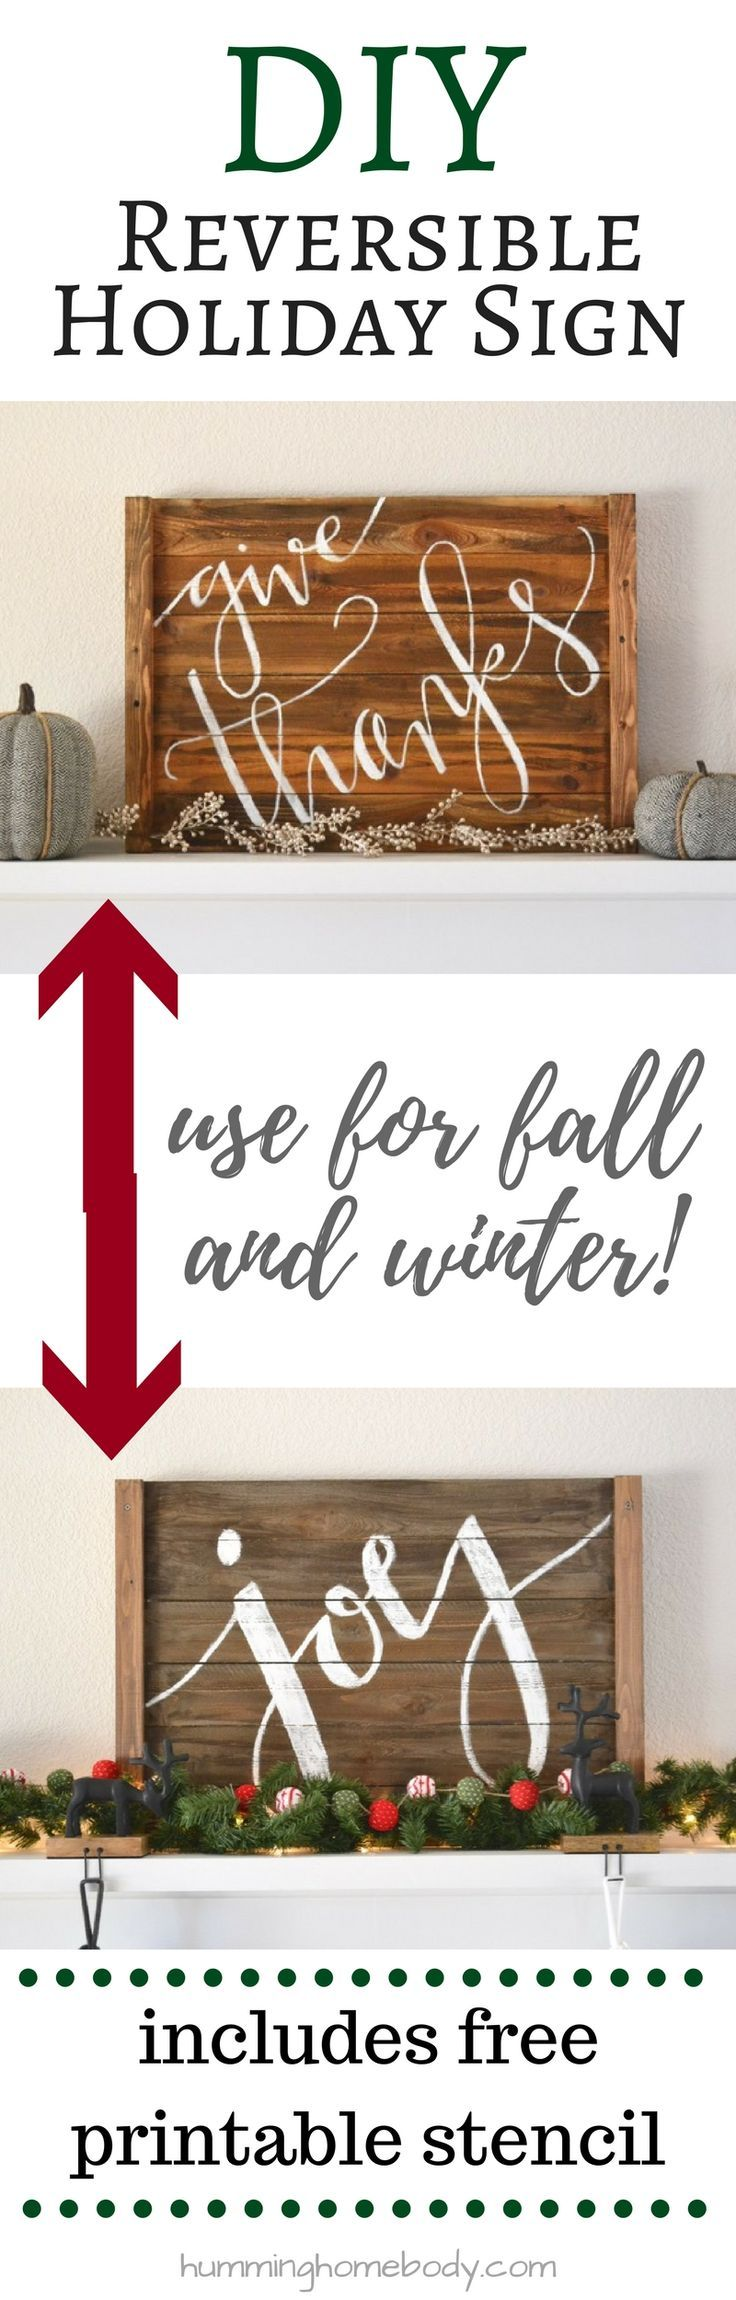 DIY this rustic wood holiday sign for your wall or mantel. It is REVERSIBLE so it can be used for multiple holidays! Best of all, the materials will only cost you about 5 bucks! Full tutorial with free printable stencil to get perfect calligraphy.